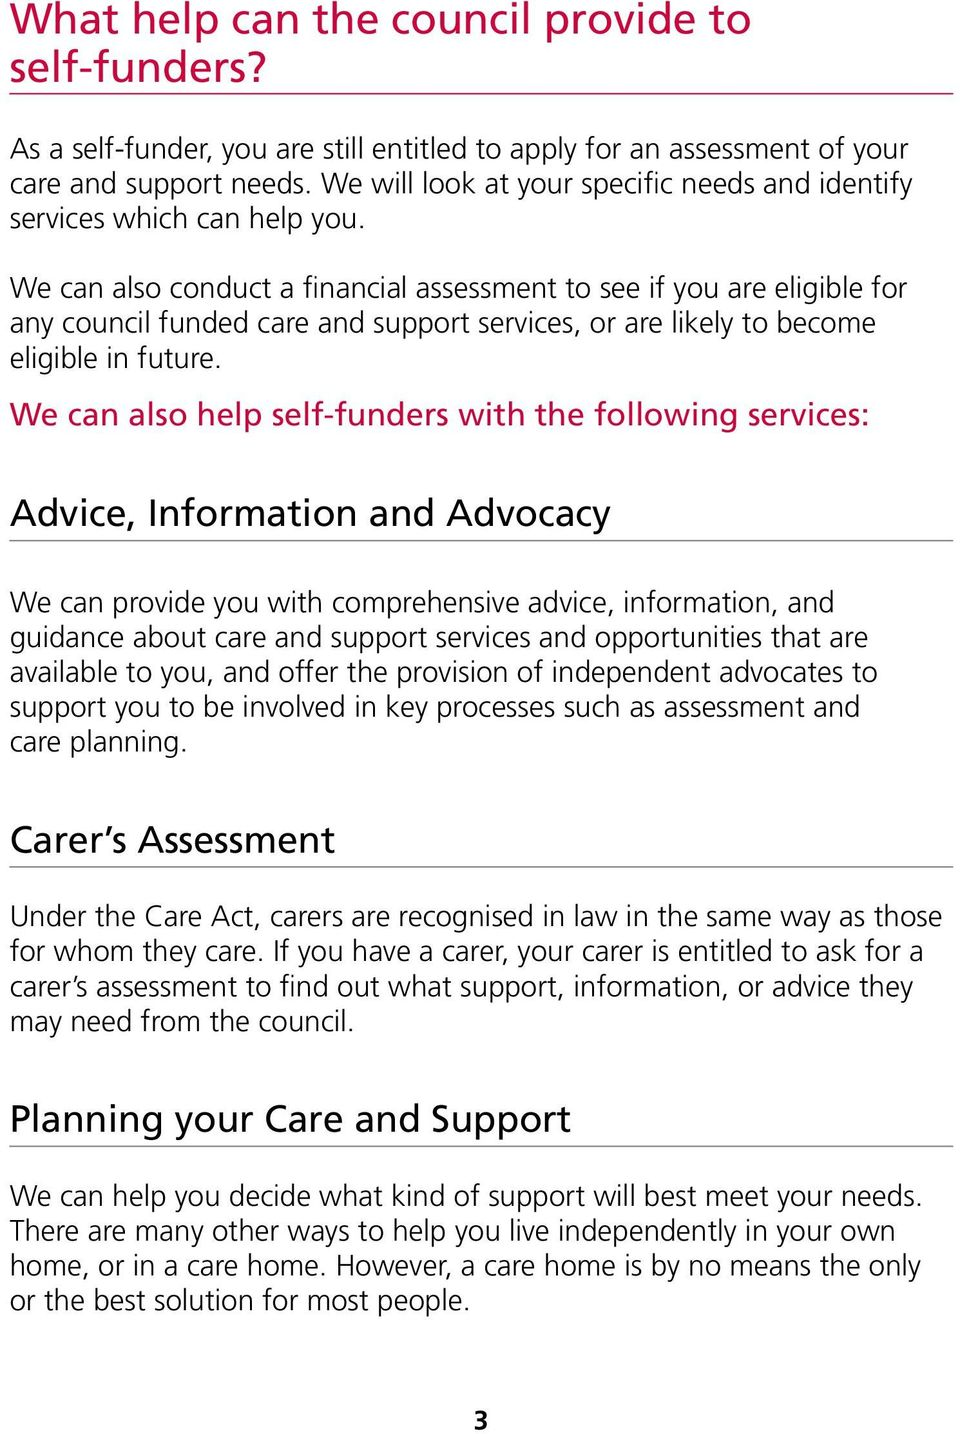 We can also conduct a financial assessment to see if you are eligible for any council funded care and support services, or are likely to become eligible in future.